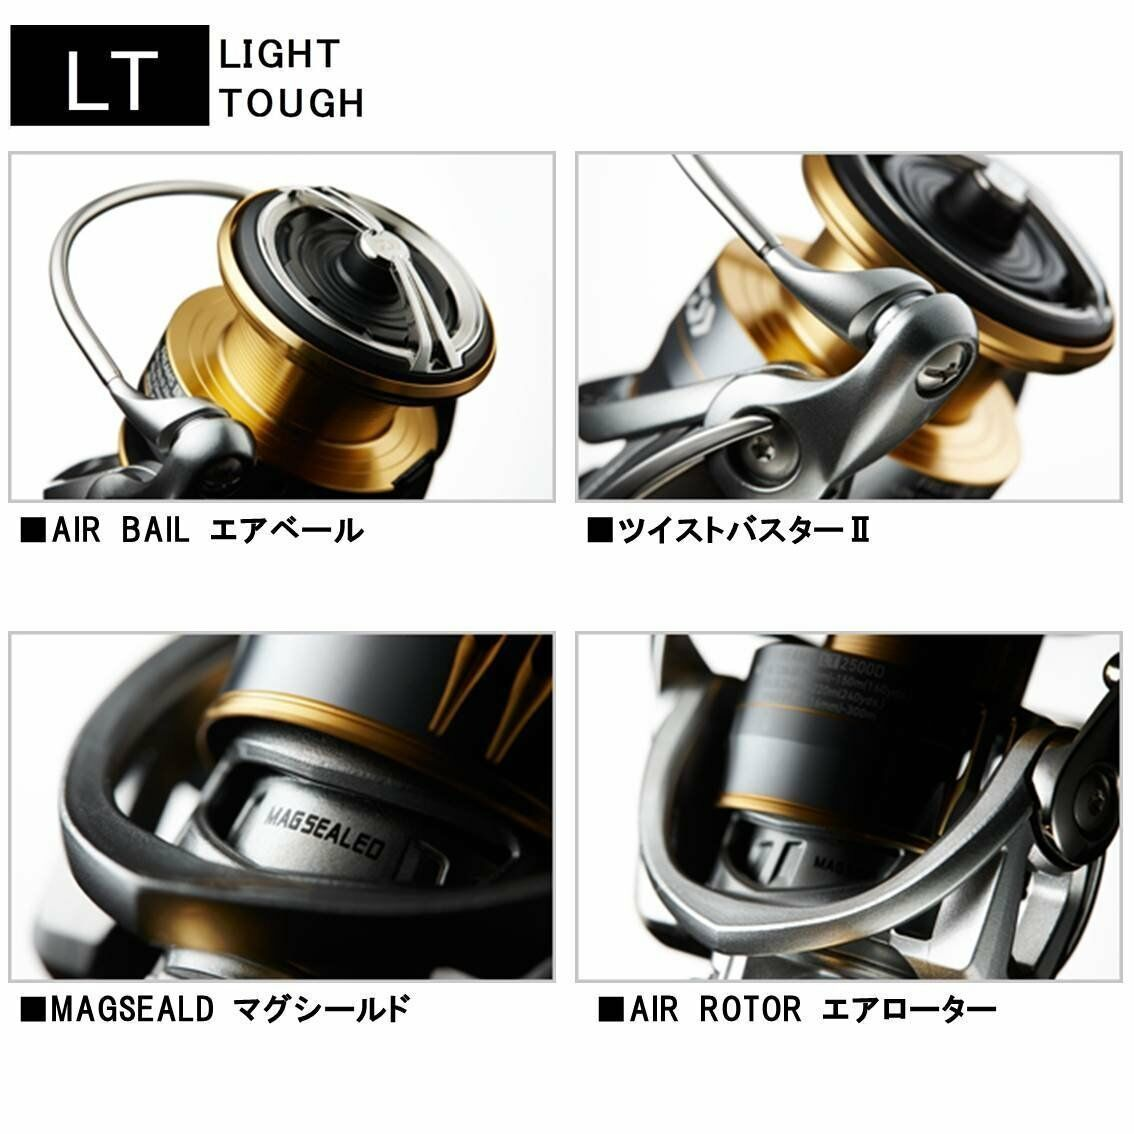 Daiwa 18 FREAMS LT1000S Spinning MAGSEELD Reel LIGHT TOUGH MAGSEELD Spinning ATD New in Box cd3519